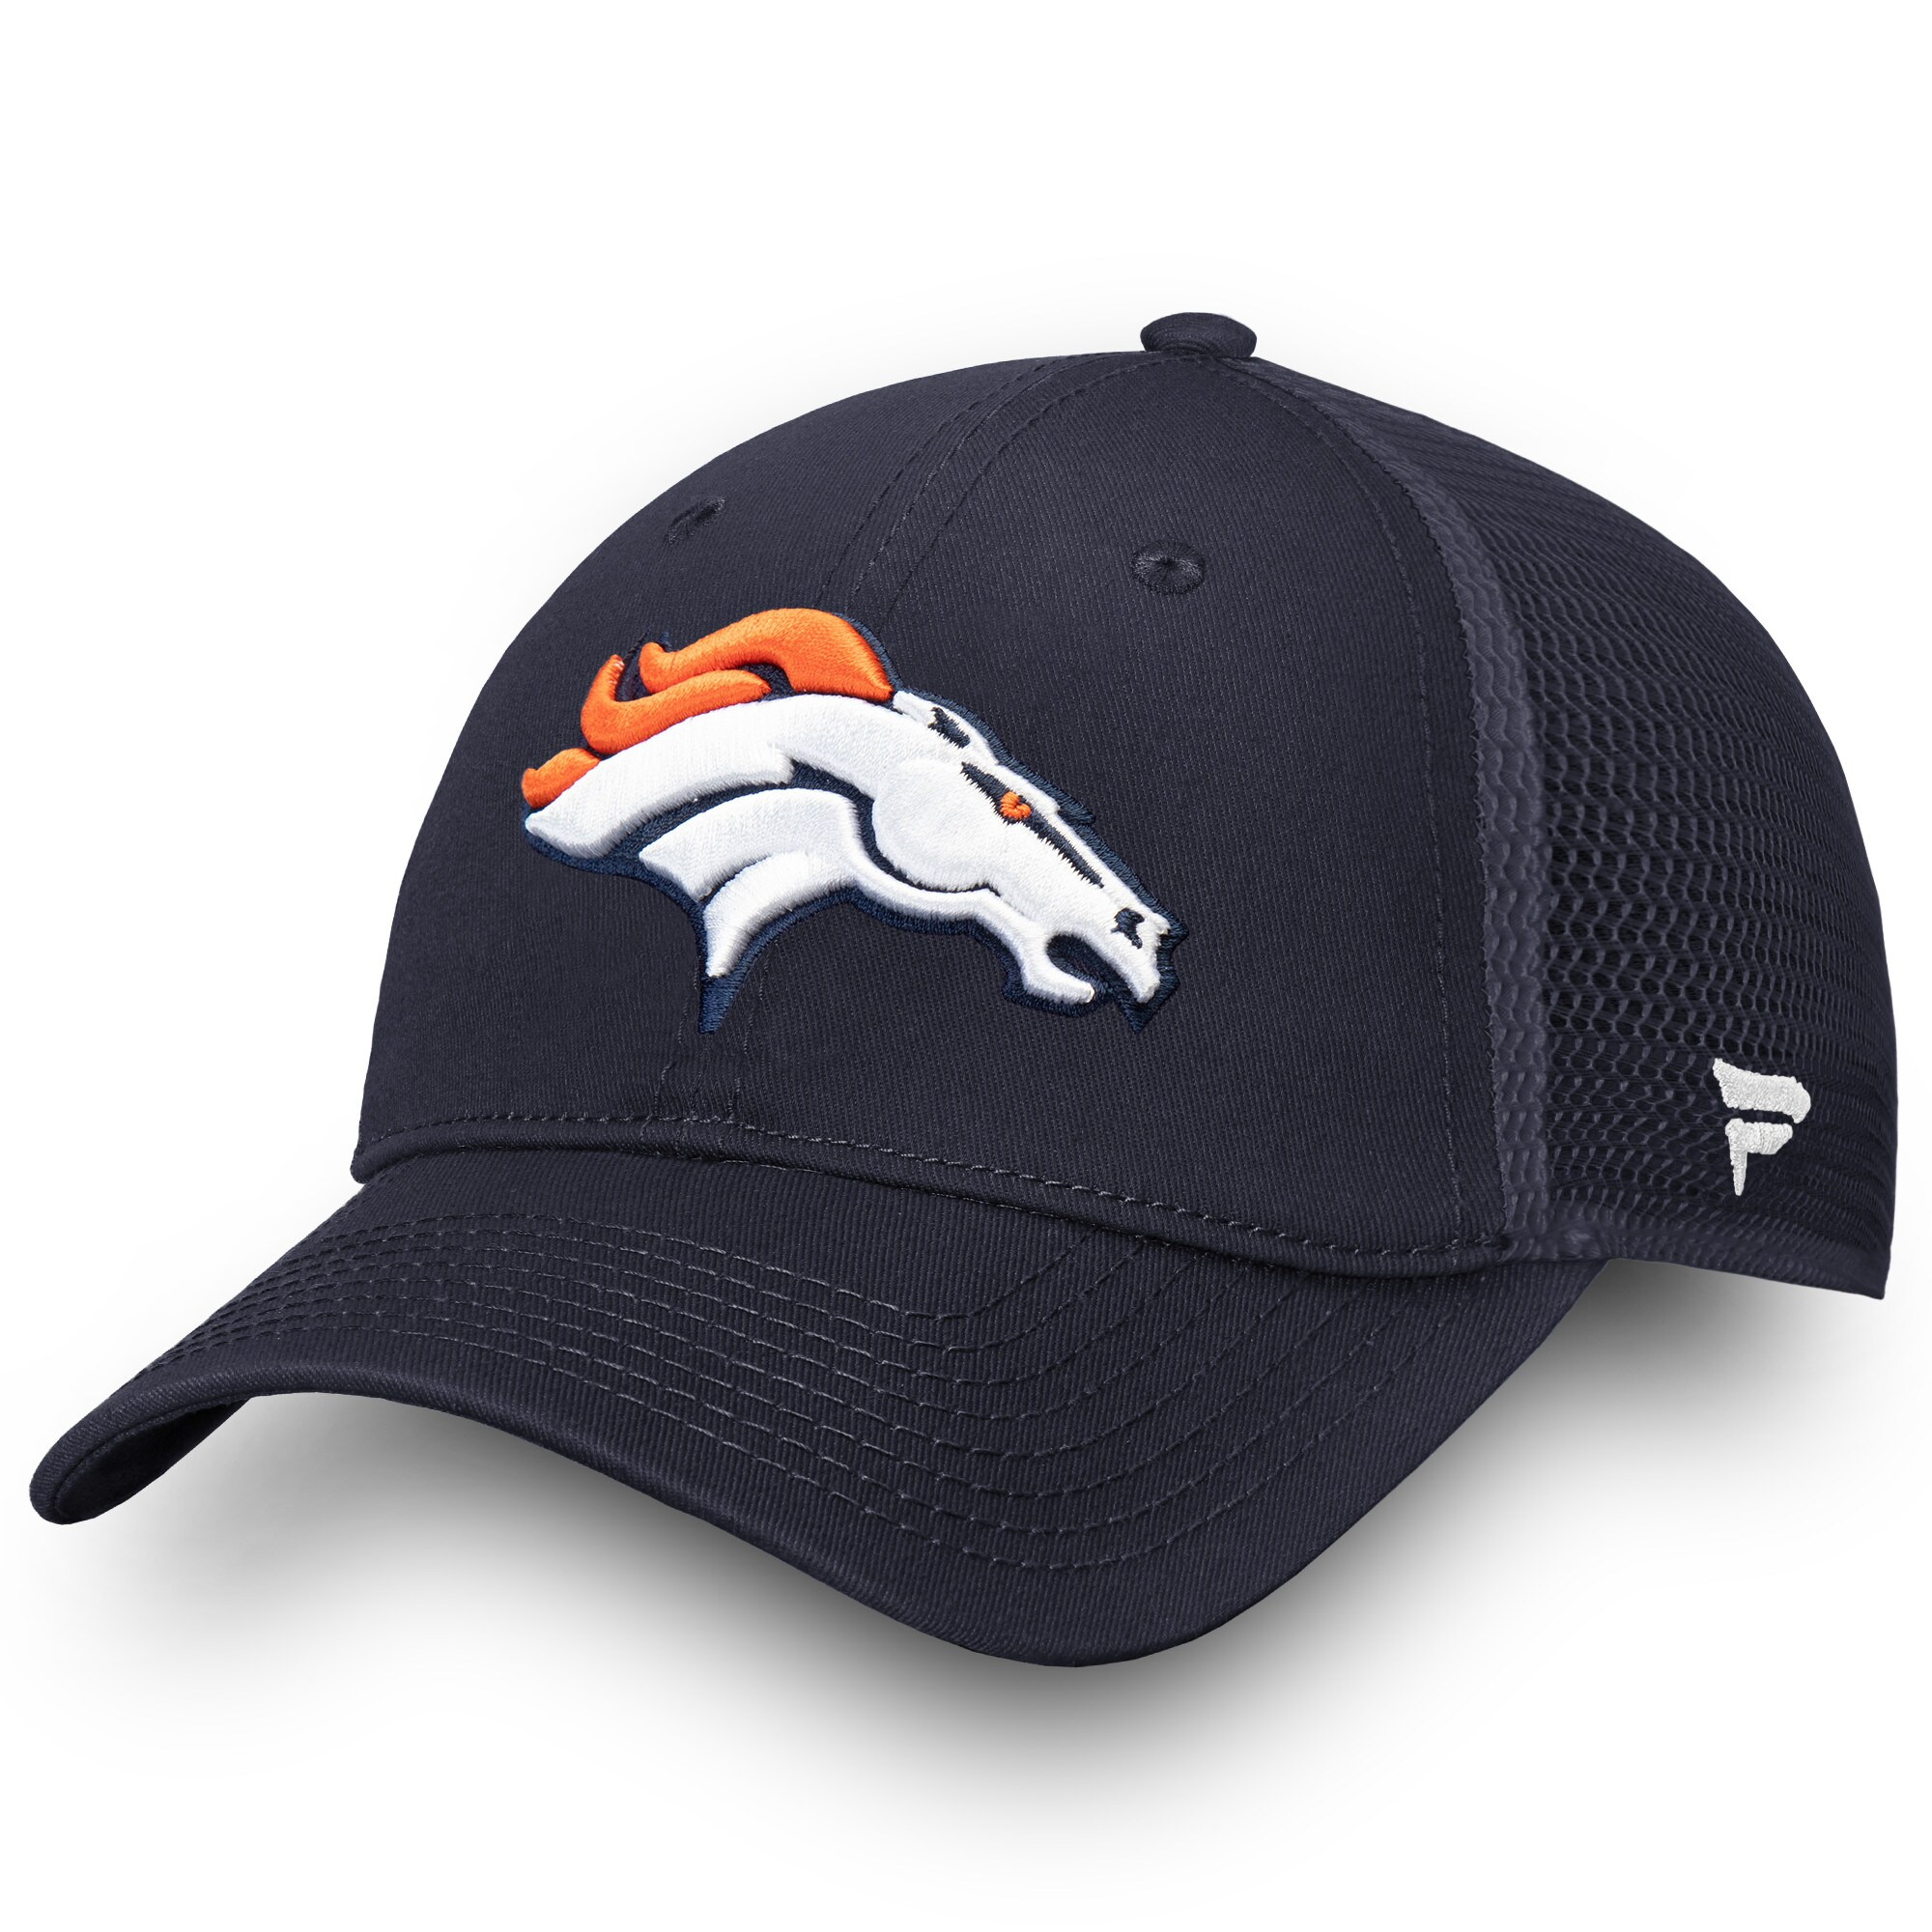 Denver Broncos NFL Pro Line by Fanatics Branded Elevated Core Trucker Adjustable Snapback Hat - Navy